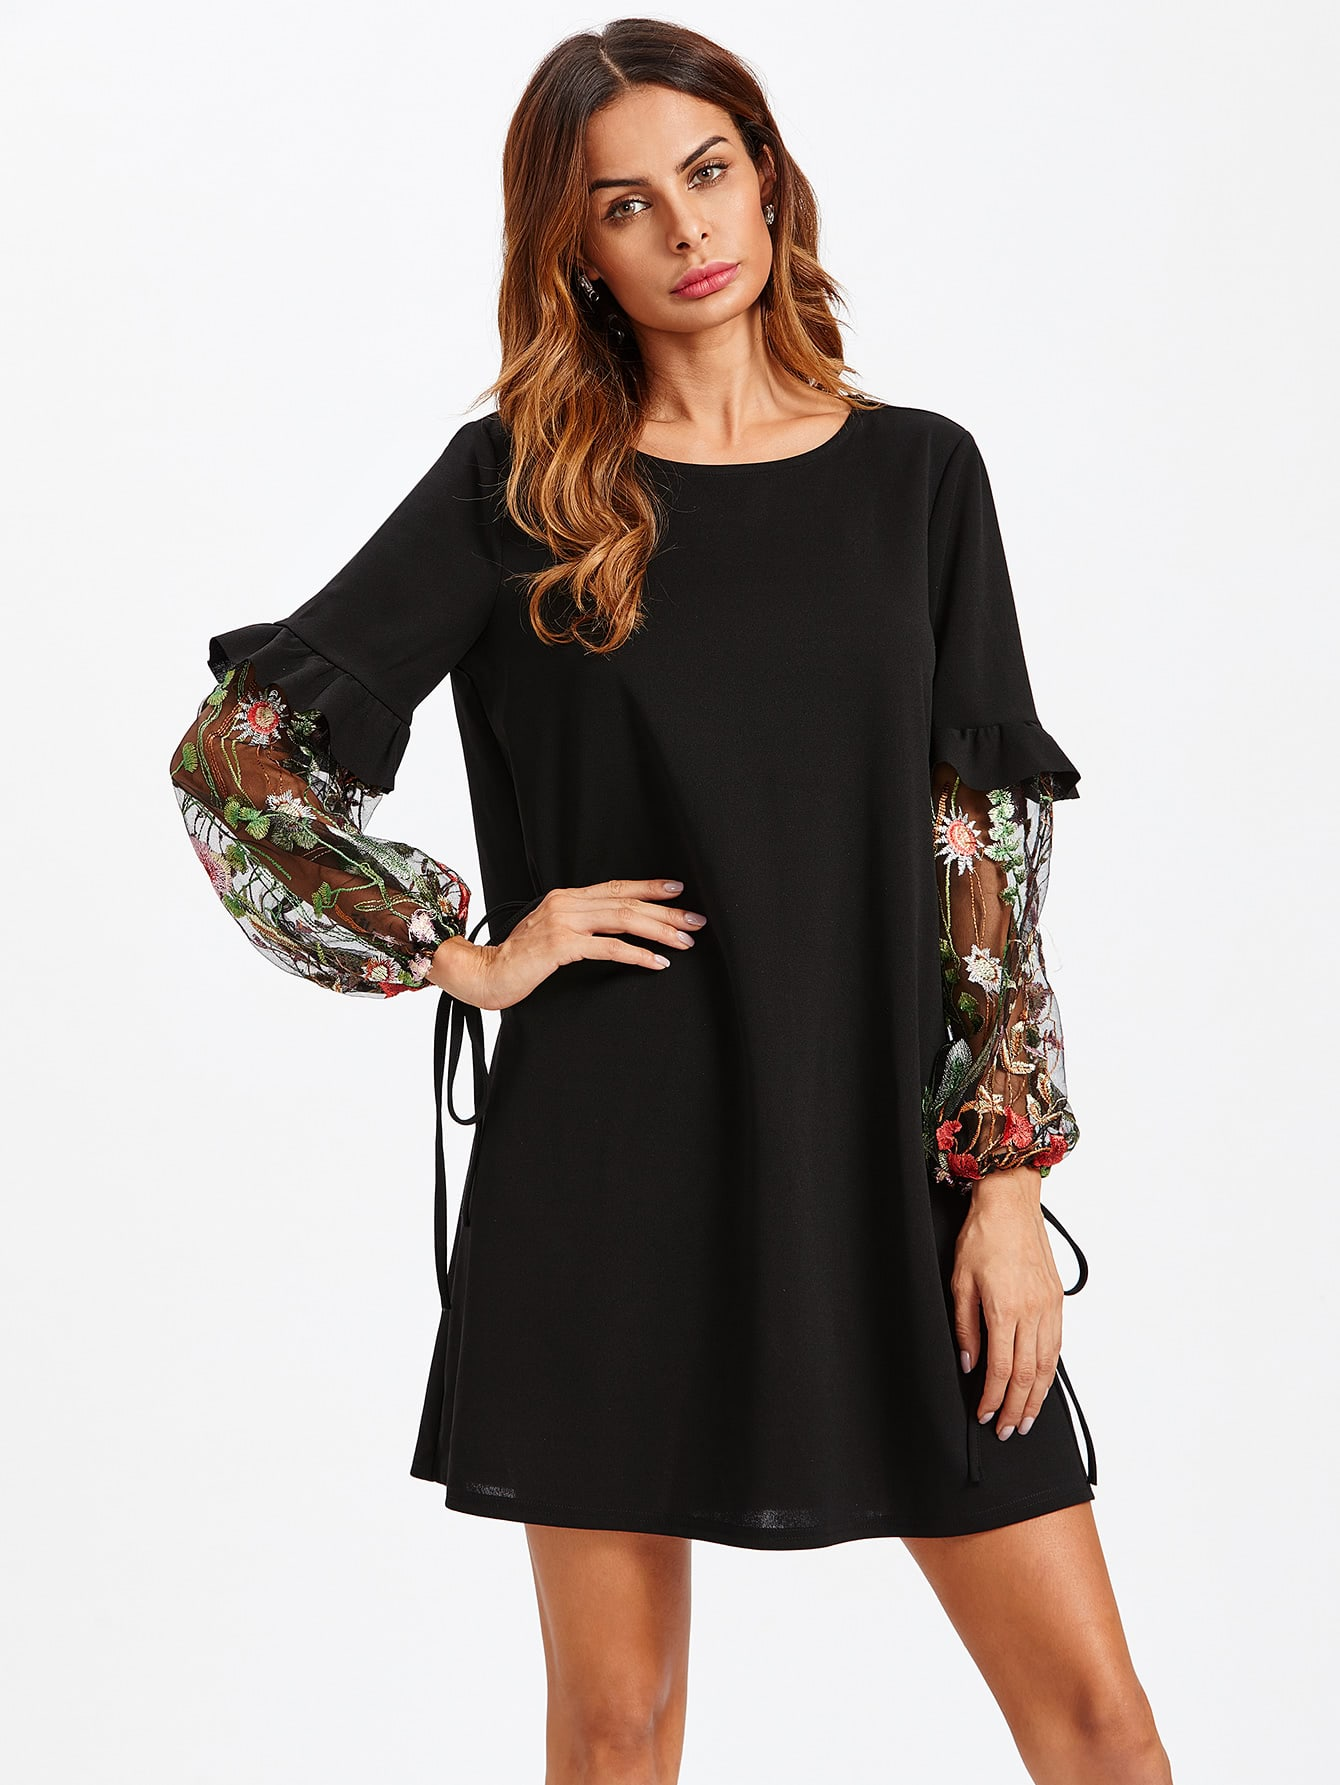 Contrast Embroidery Mesh Tied Sleeve Frill Detail Dress frill detail crochet insert embroidered mesh top